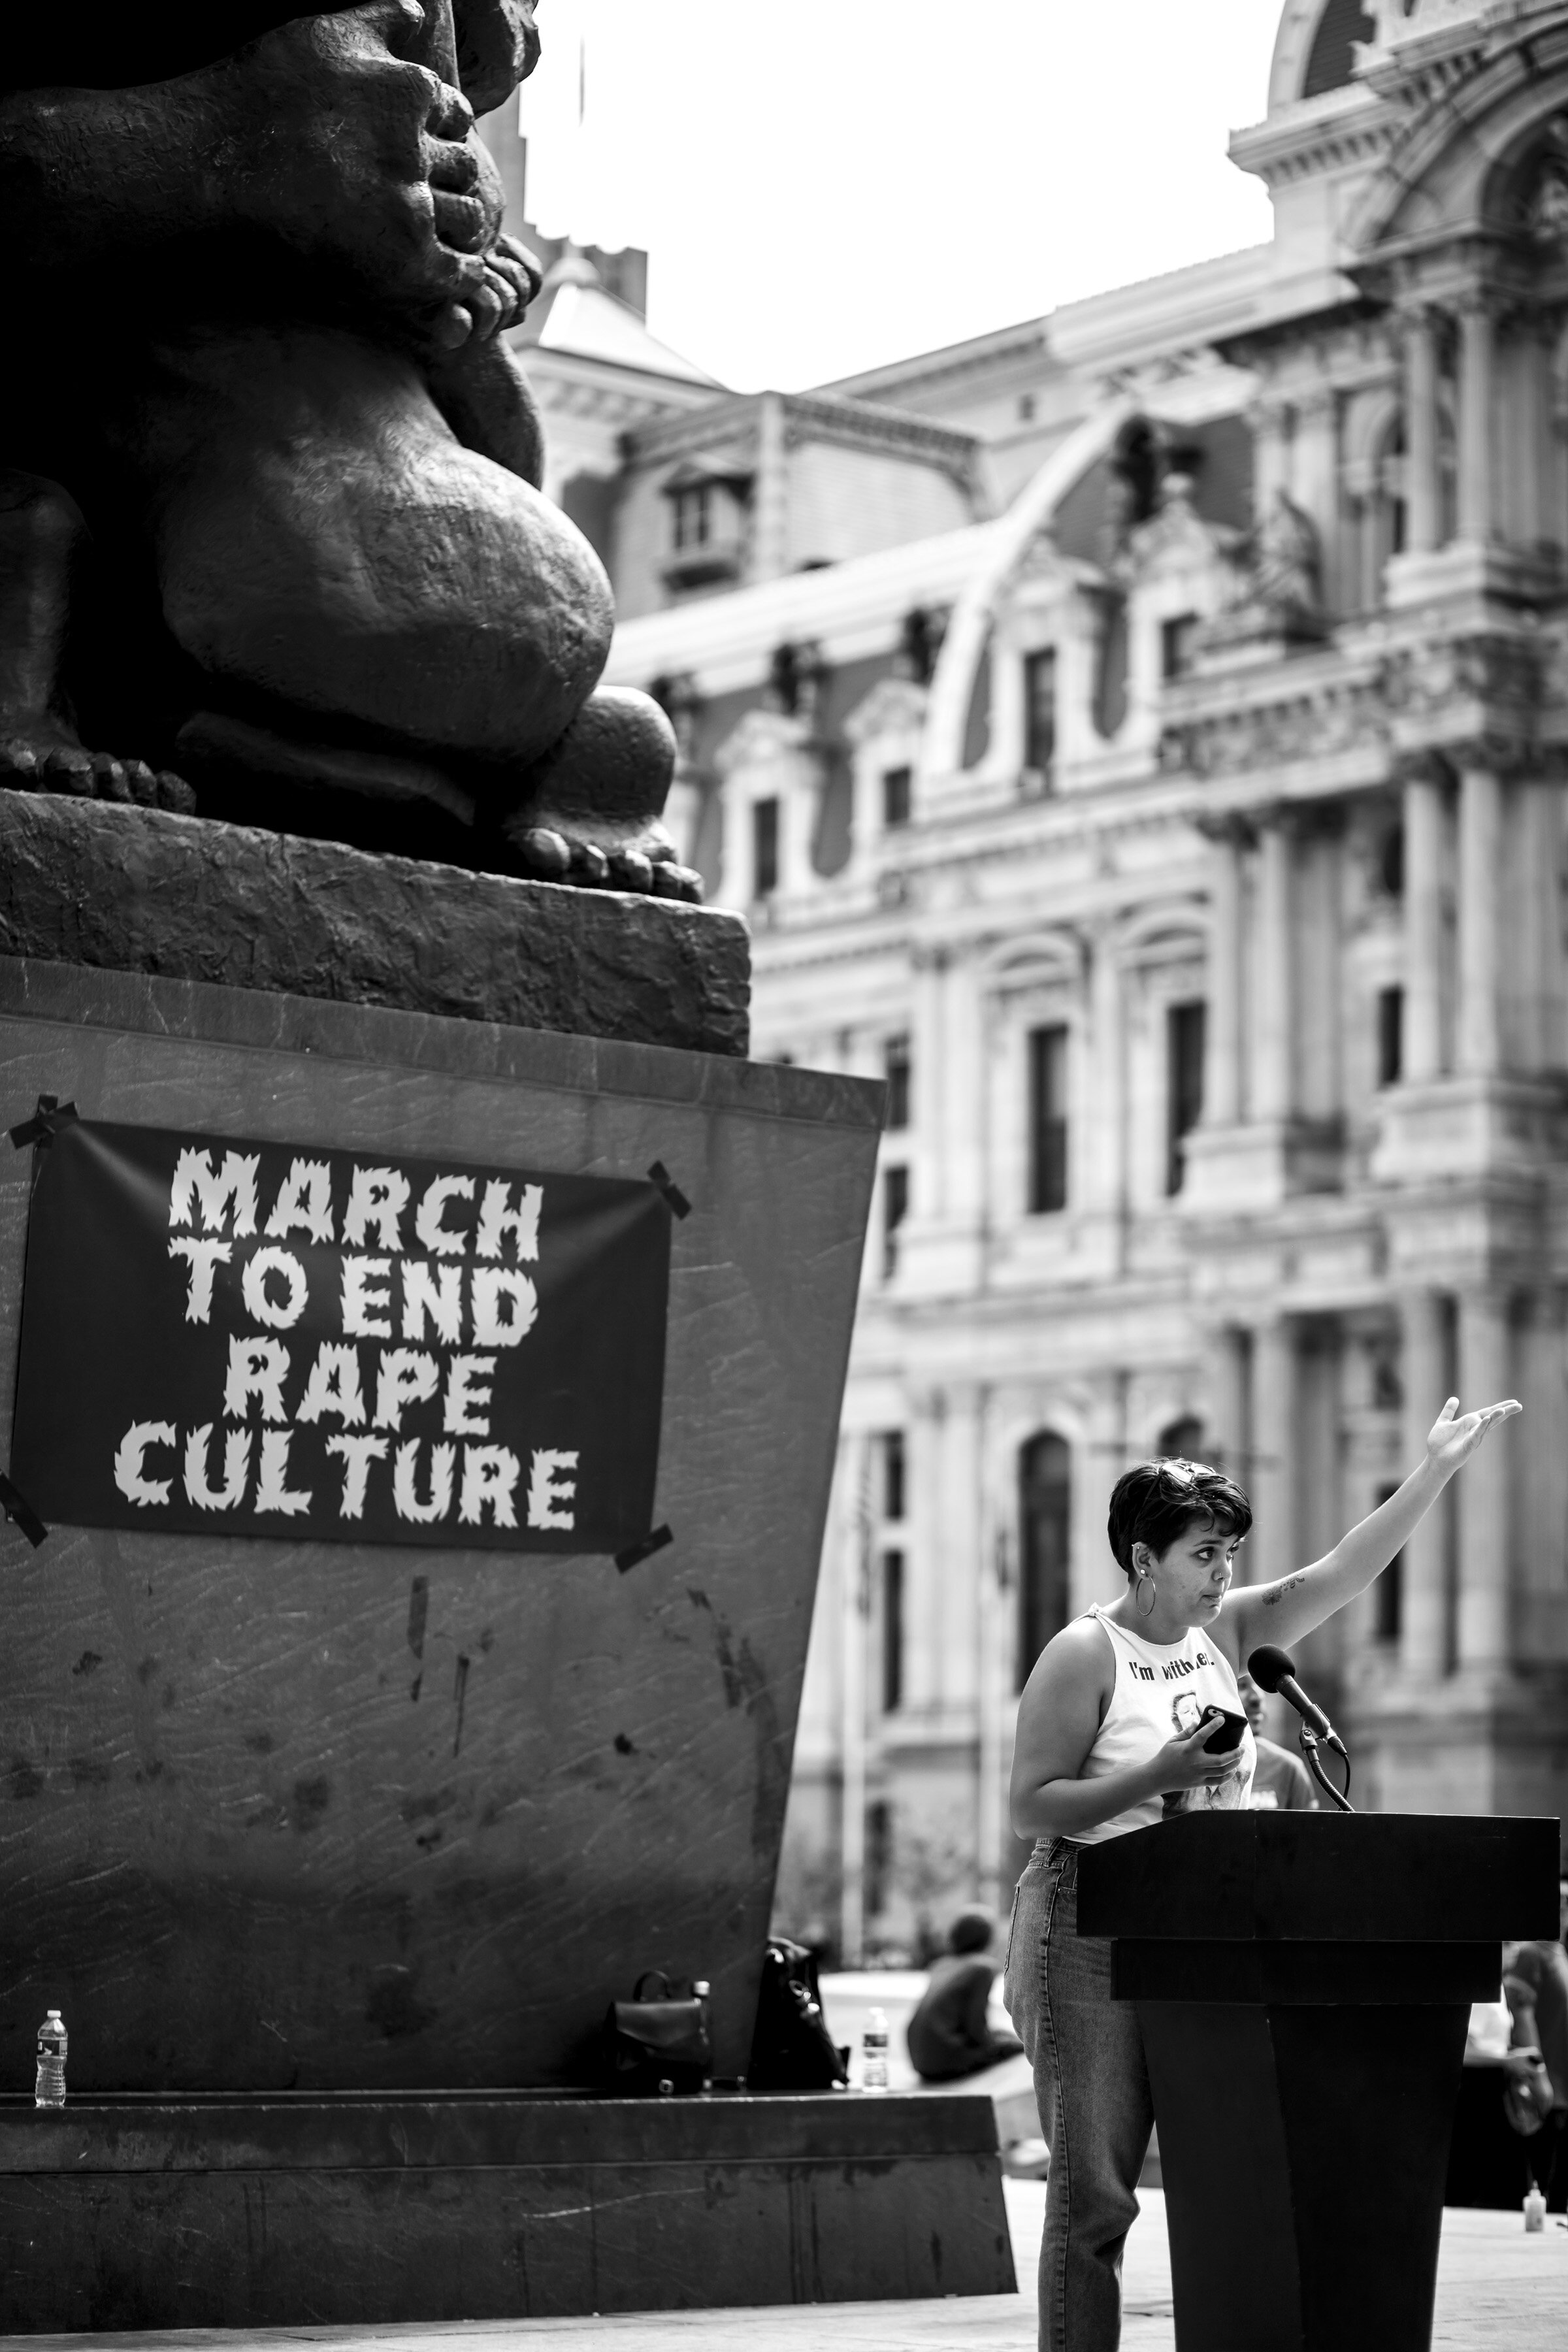 MarchToEndRapeCulture_2019_MikeArrison_BW_092919_0055.jpg